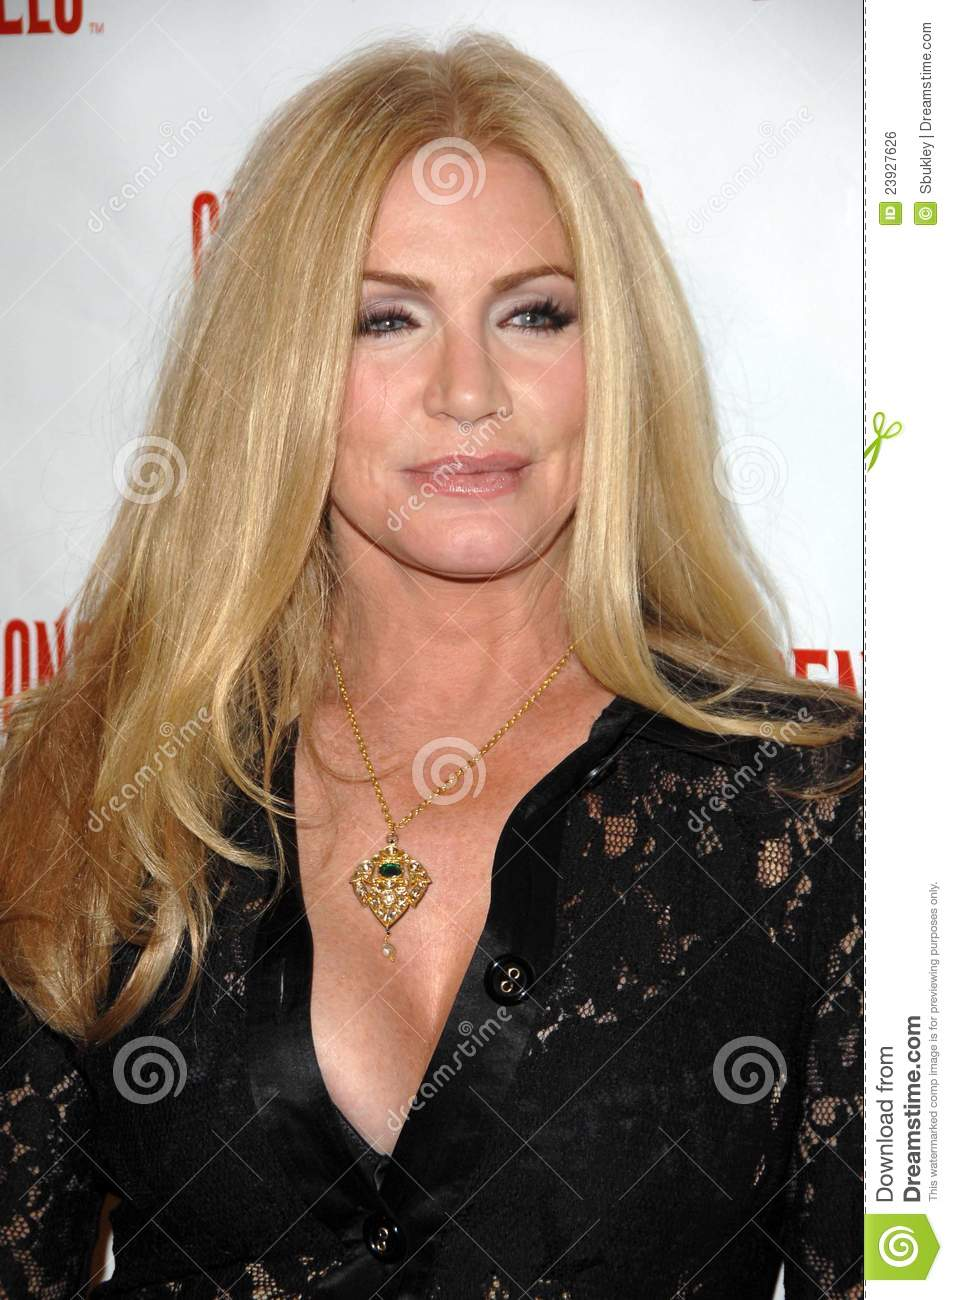 shannon tweed michael jacksonshannon tweed online movie, shannon tweed watch movie online, shannon tweed michael jackson, shannon tweed, shannon tweed and gene simmons, shannon tweed imdb, shannon tweed twitter